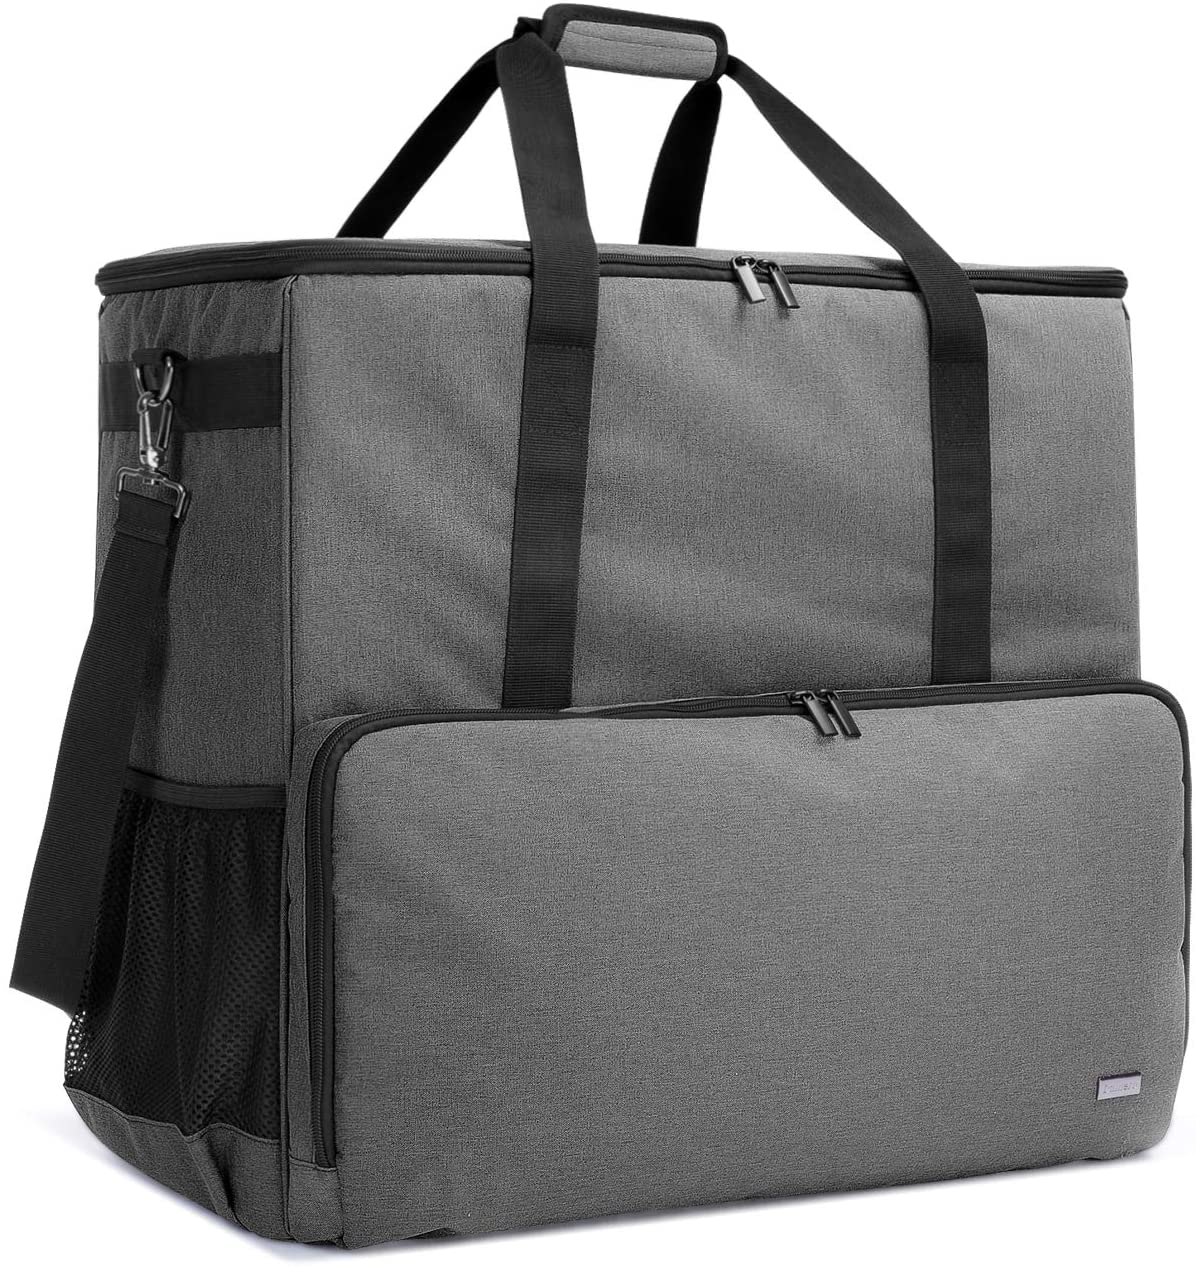 CURMIO Desktop Computer Travel Bag, Carrying Case for Computer Tower PC Chassis, Keyboard, Cable and Mouse, Bag Only, Grey